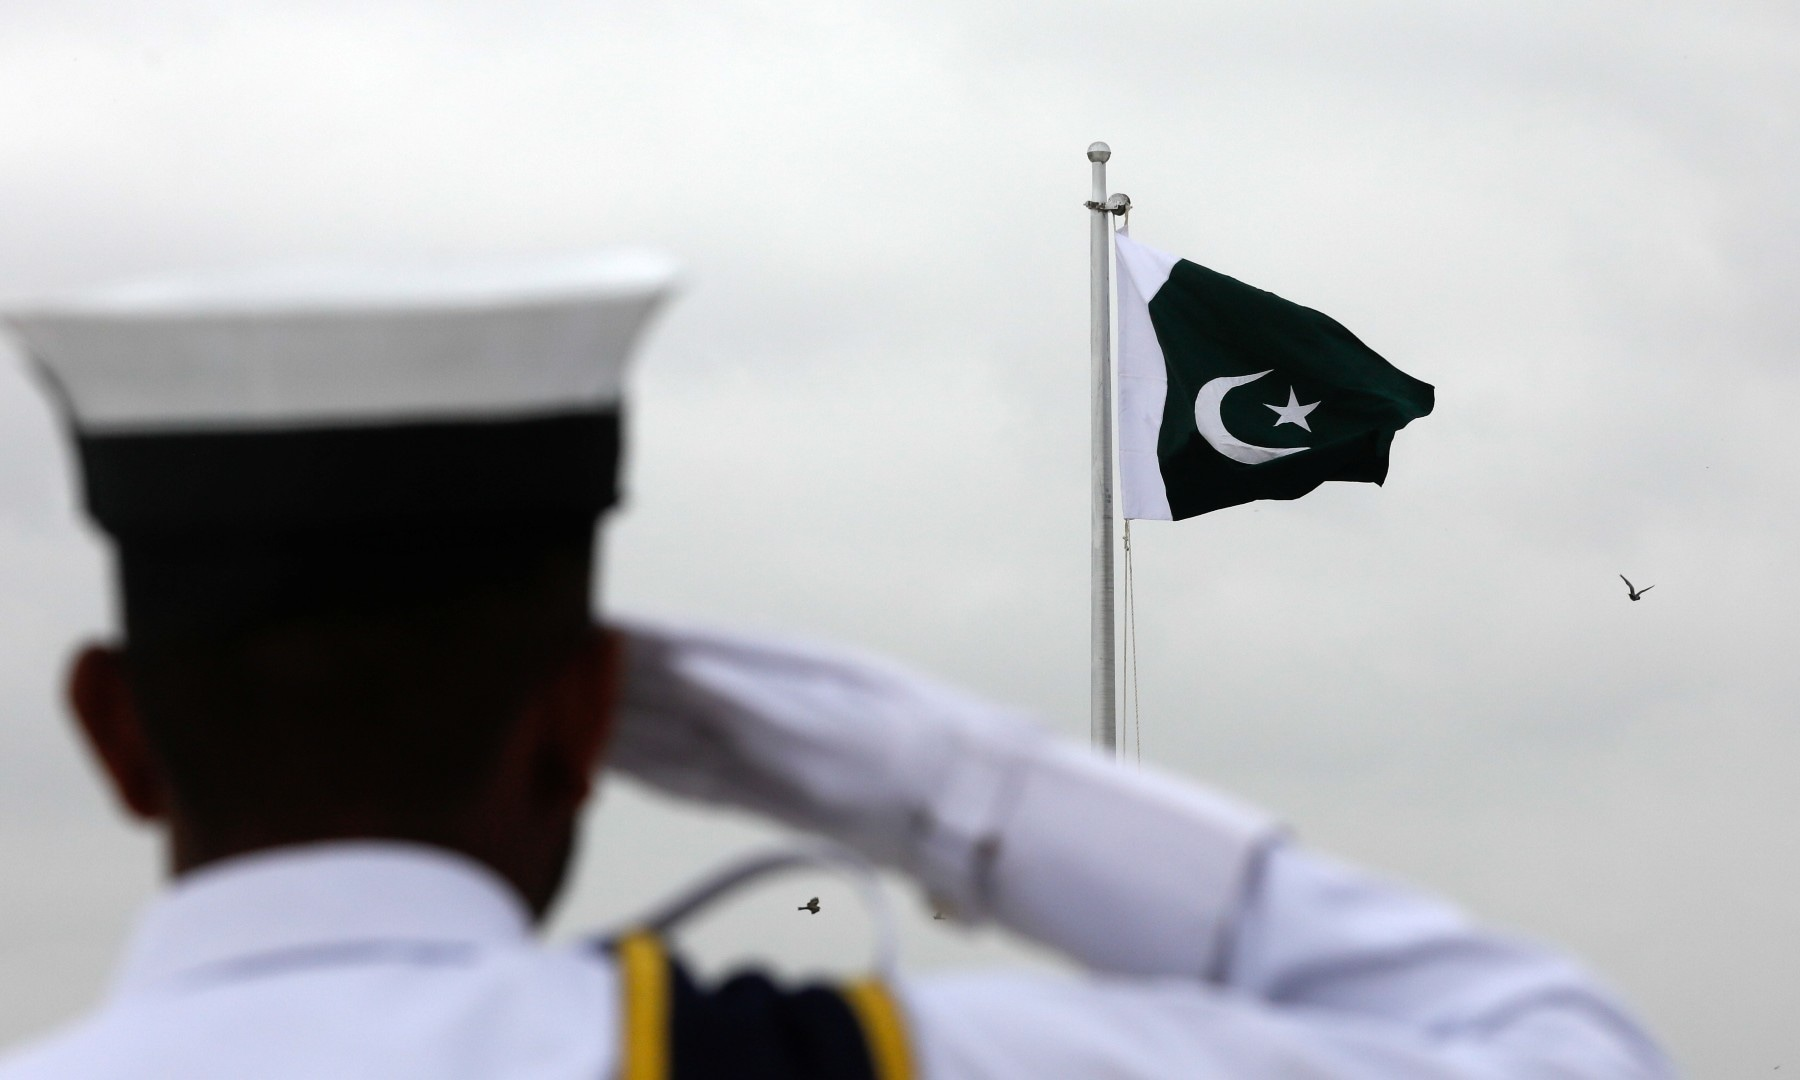 A cadet of the Pakistan Navy salutes the national flag during a flag hoisting ceremony to celebrate Independence Day at Quaid-i-Azam's mausoleum in Karachi on August 14. — Reuters